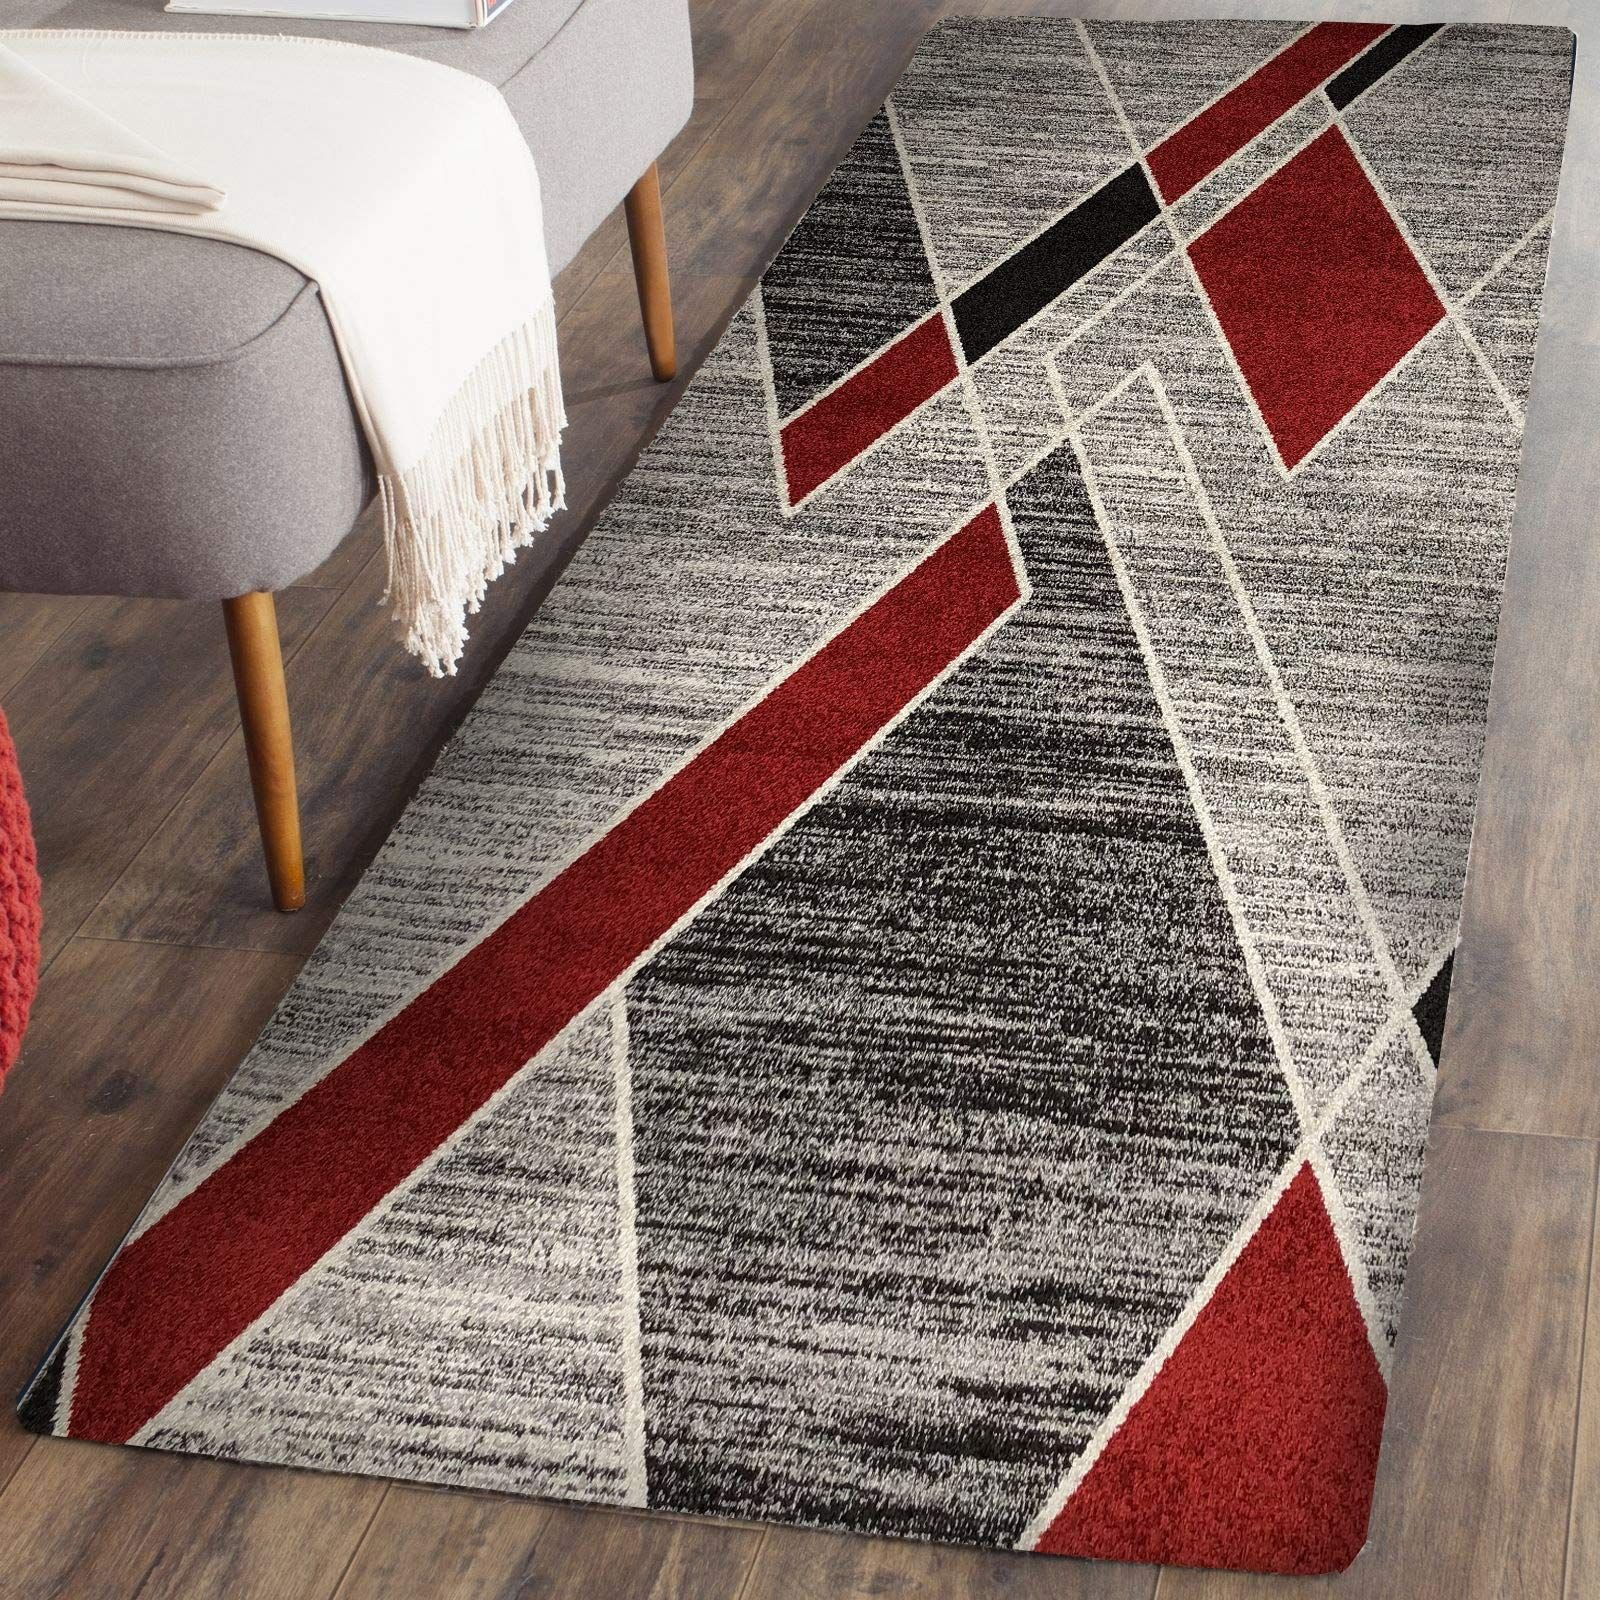 Rug On Carpet Bedroom Fresh Prestige Decor area Rugs 2x5 Living Room Rug Carpet Grey Red